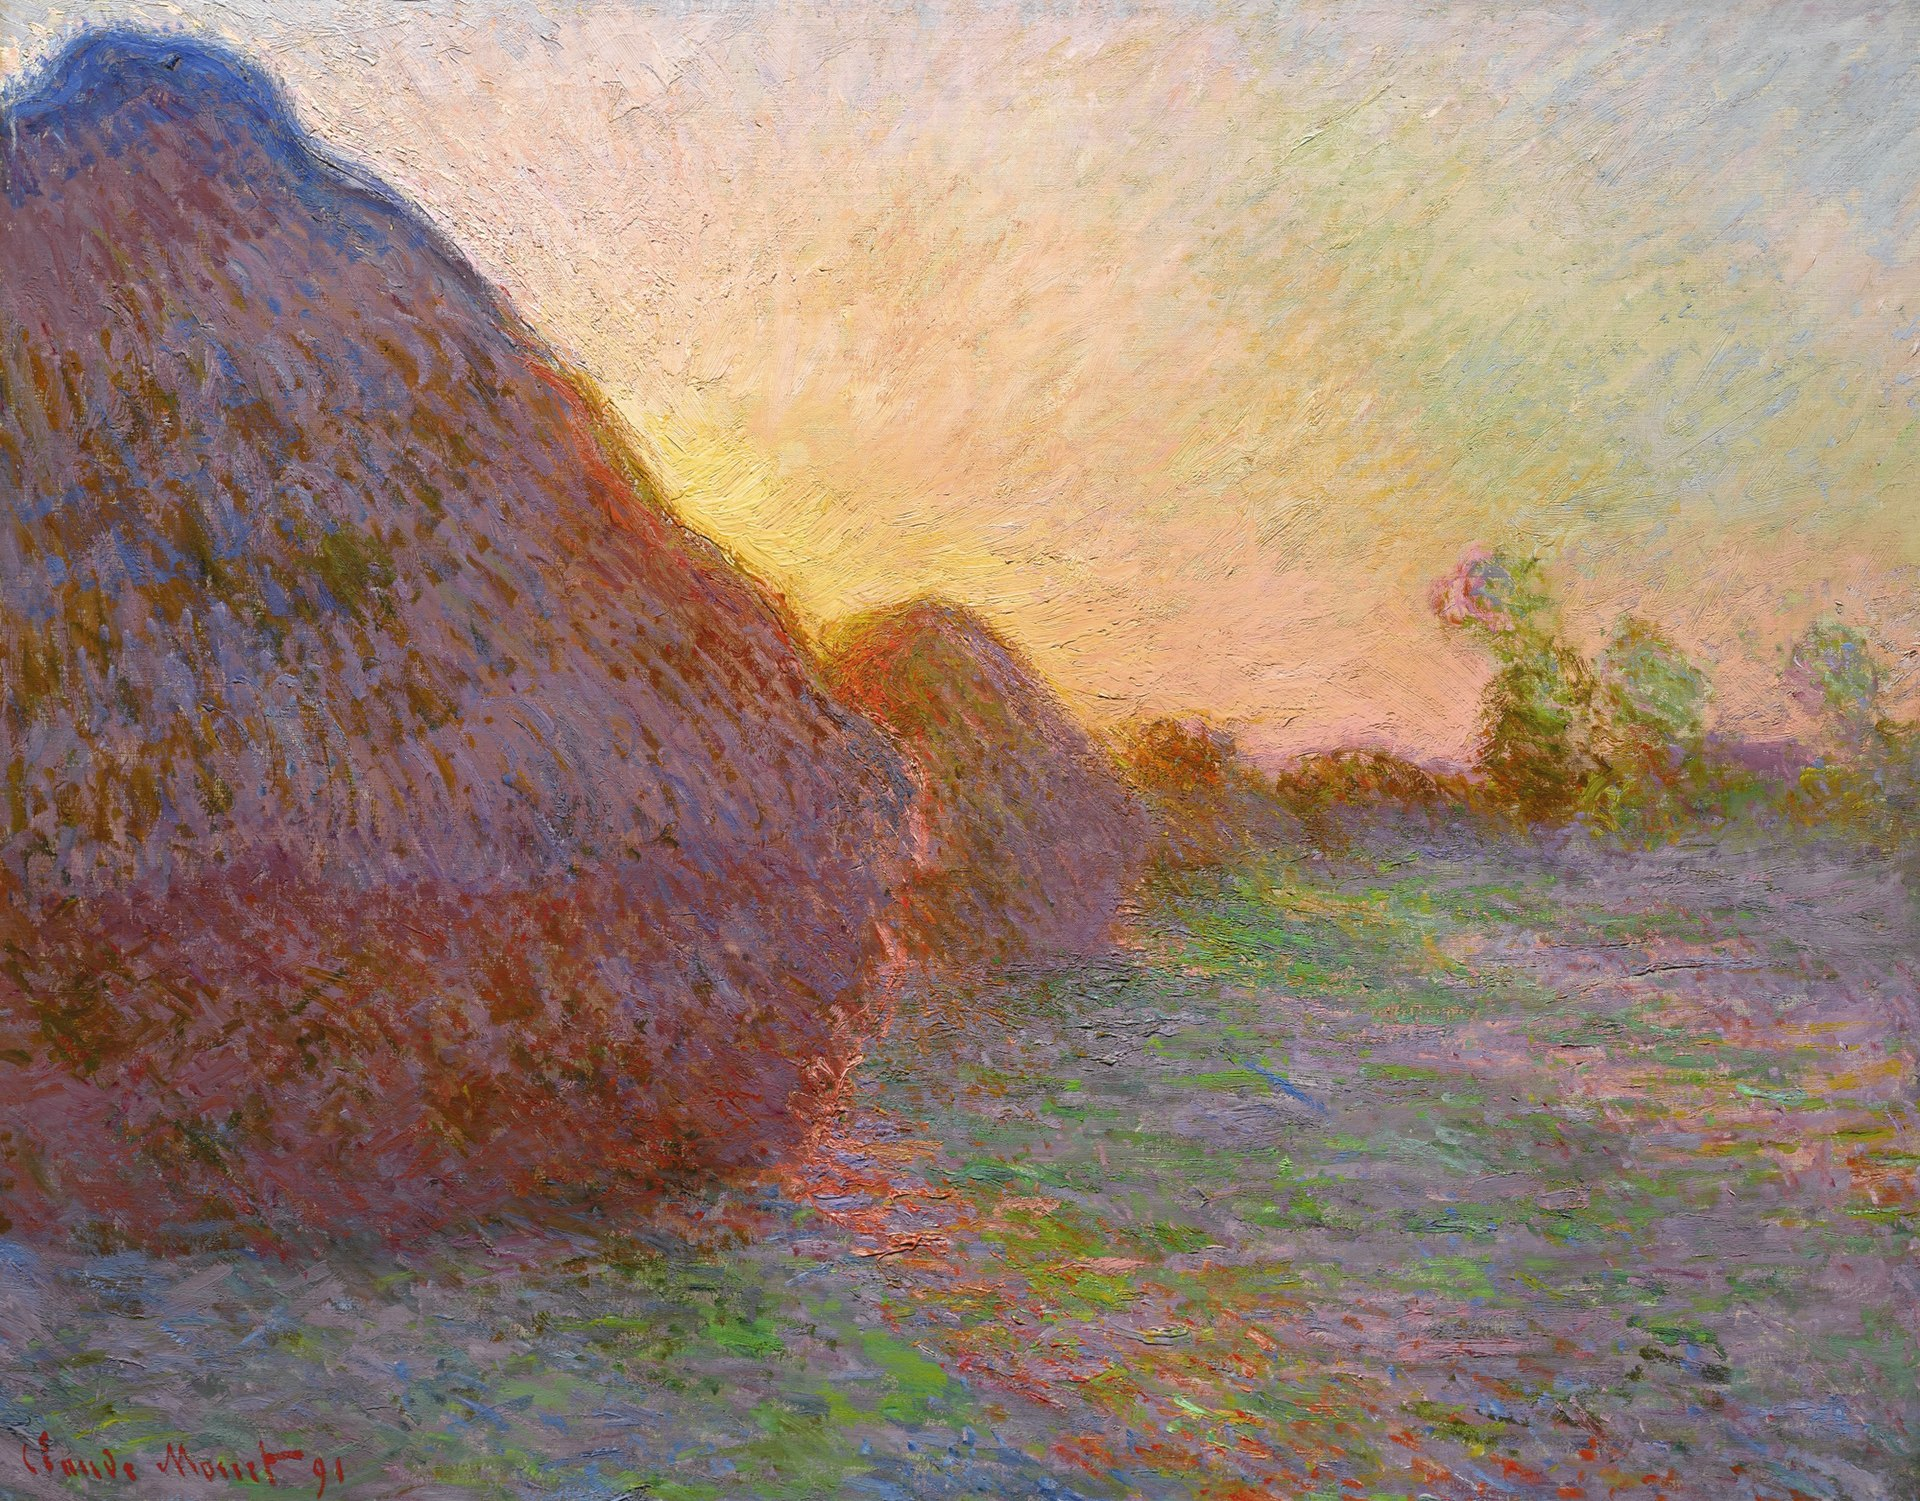 Meuses, by Monet sold in 2019 for $100.7 million dollars.